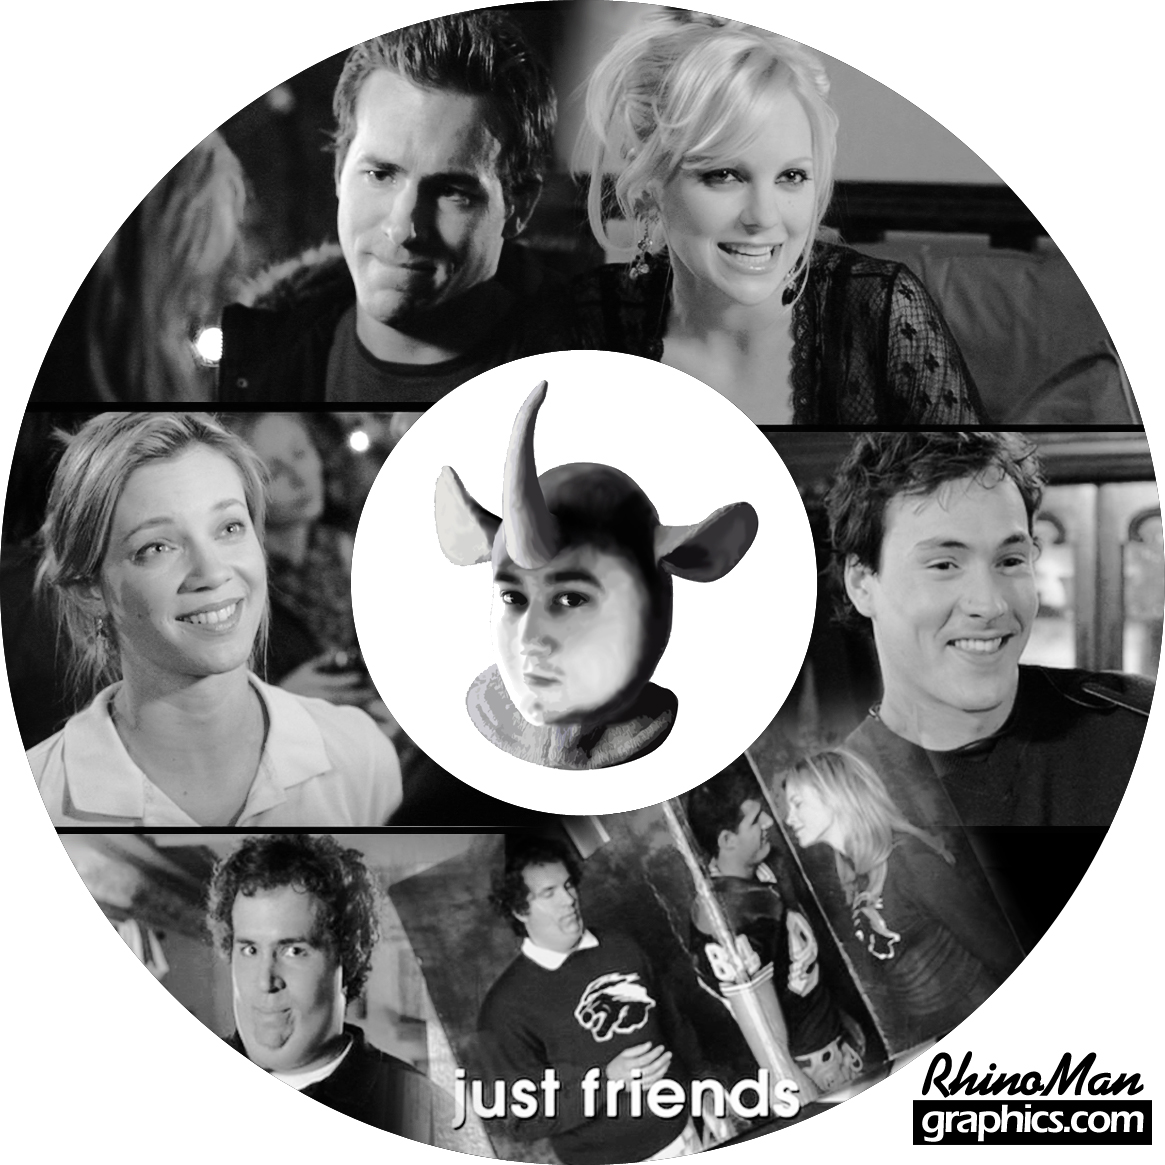 JUST FRIENDS - DVD Lightscribe Cover